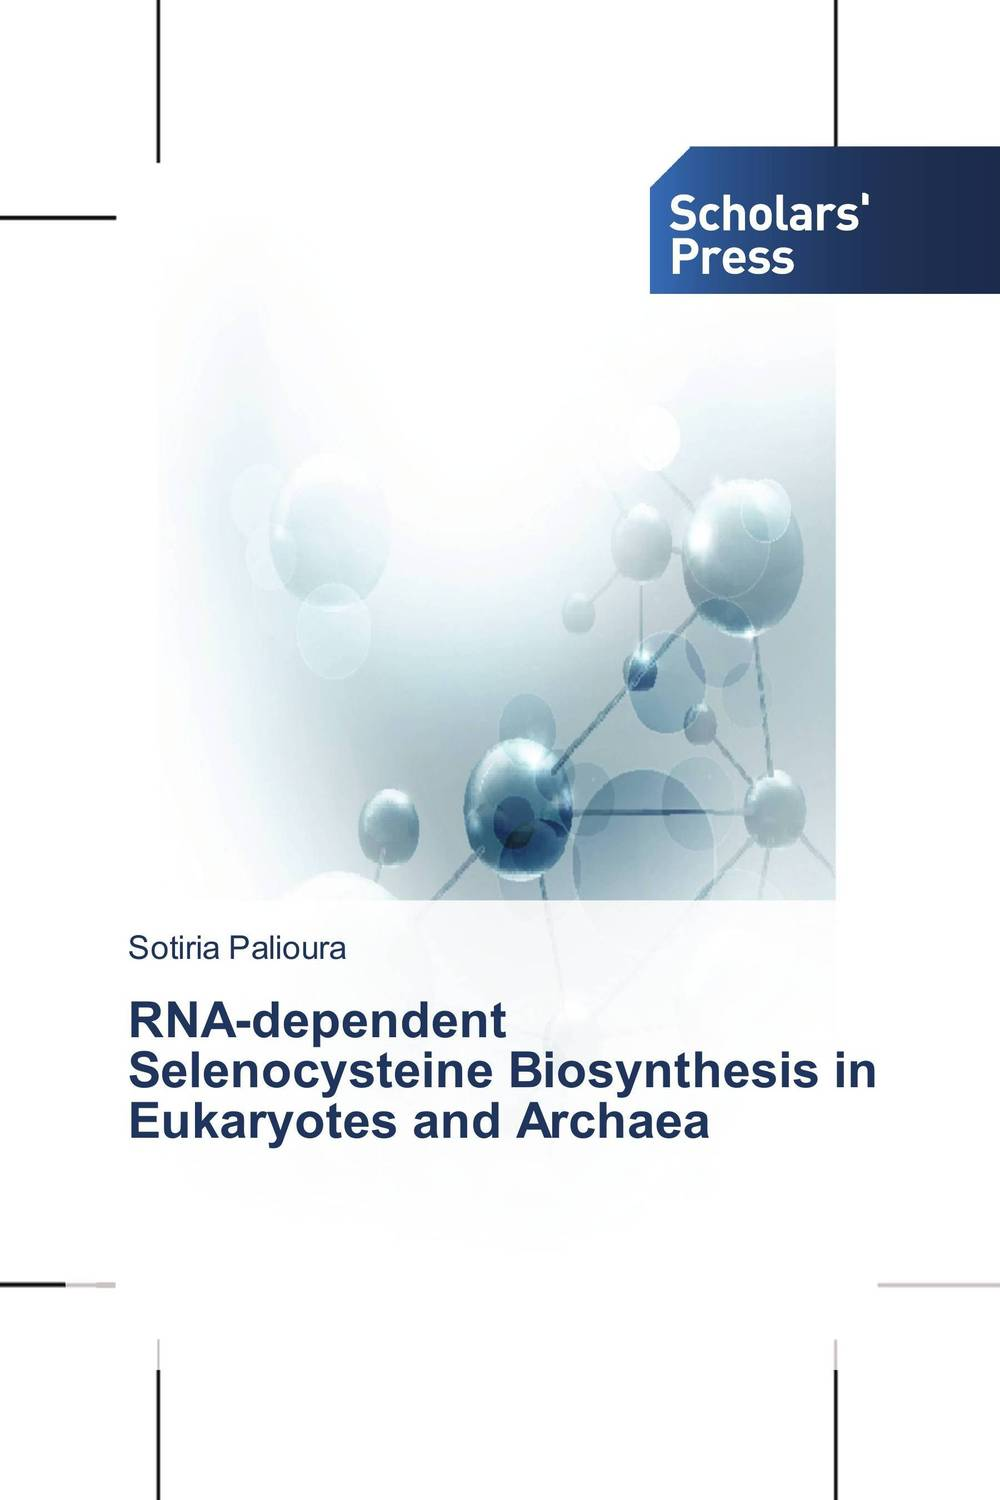 RNA-dependent Selenocysteine Biosynthesis in Eukaryotes and Archaea the role of evaluation as a mechanism for advancing principal practice